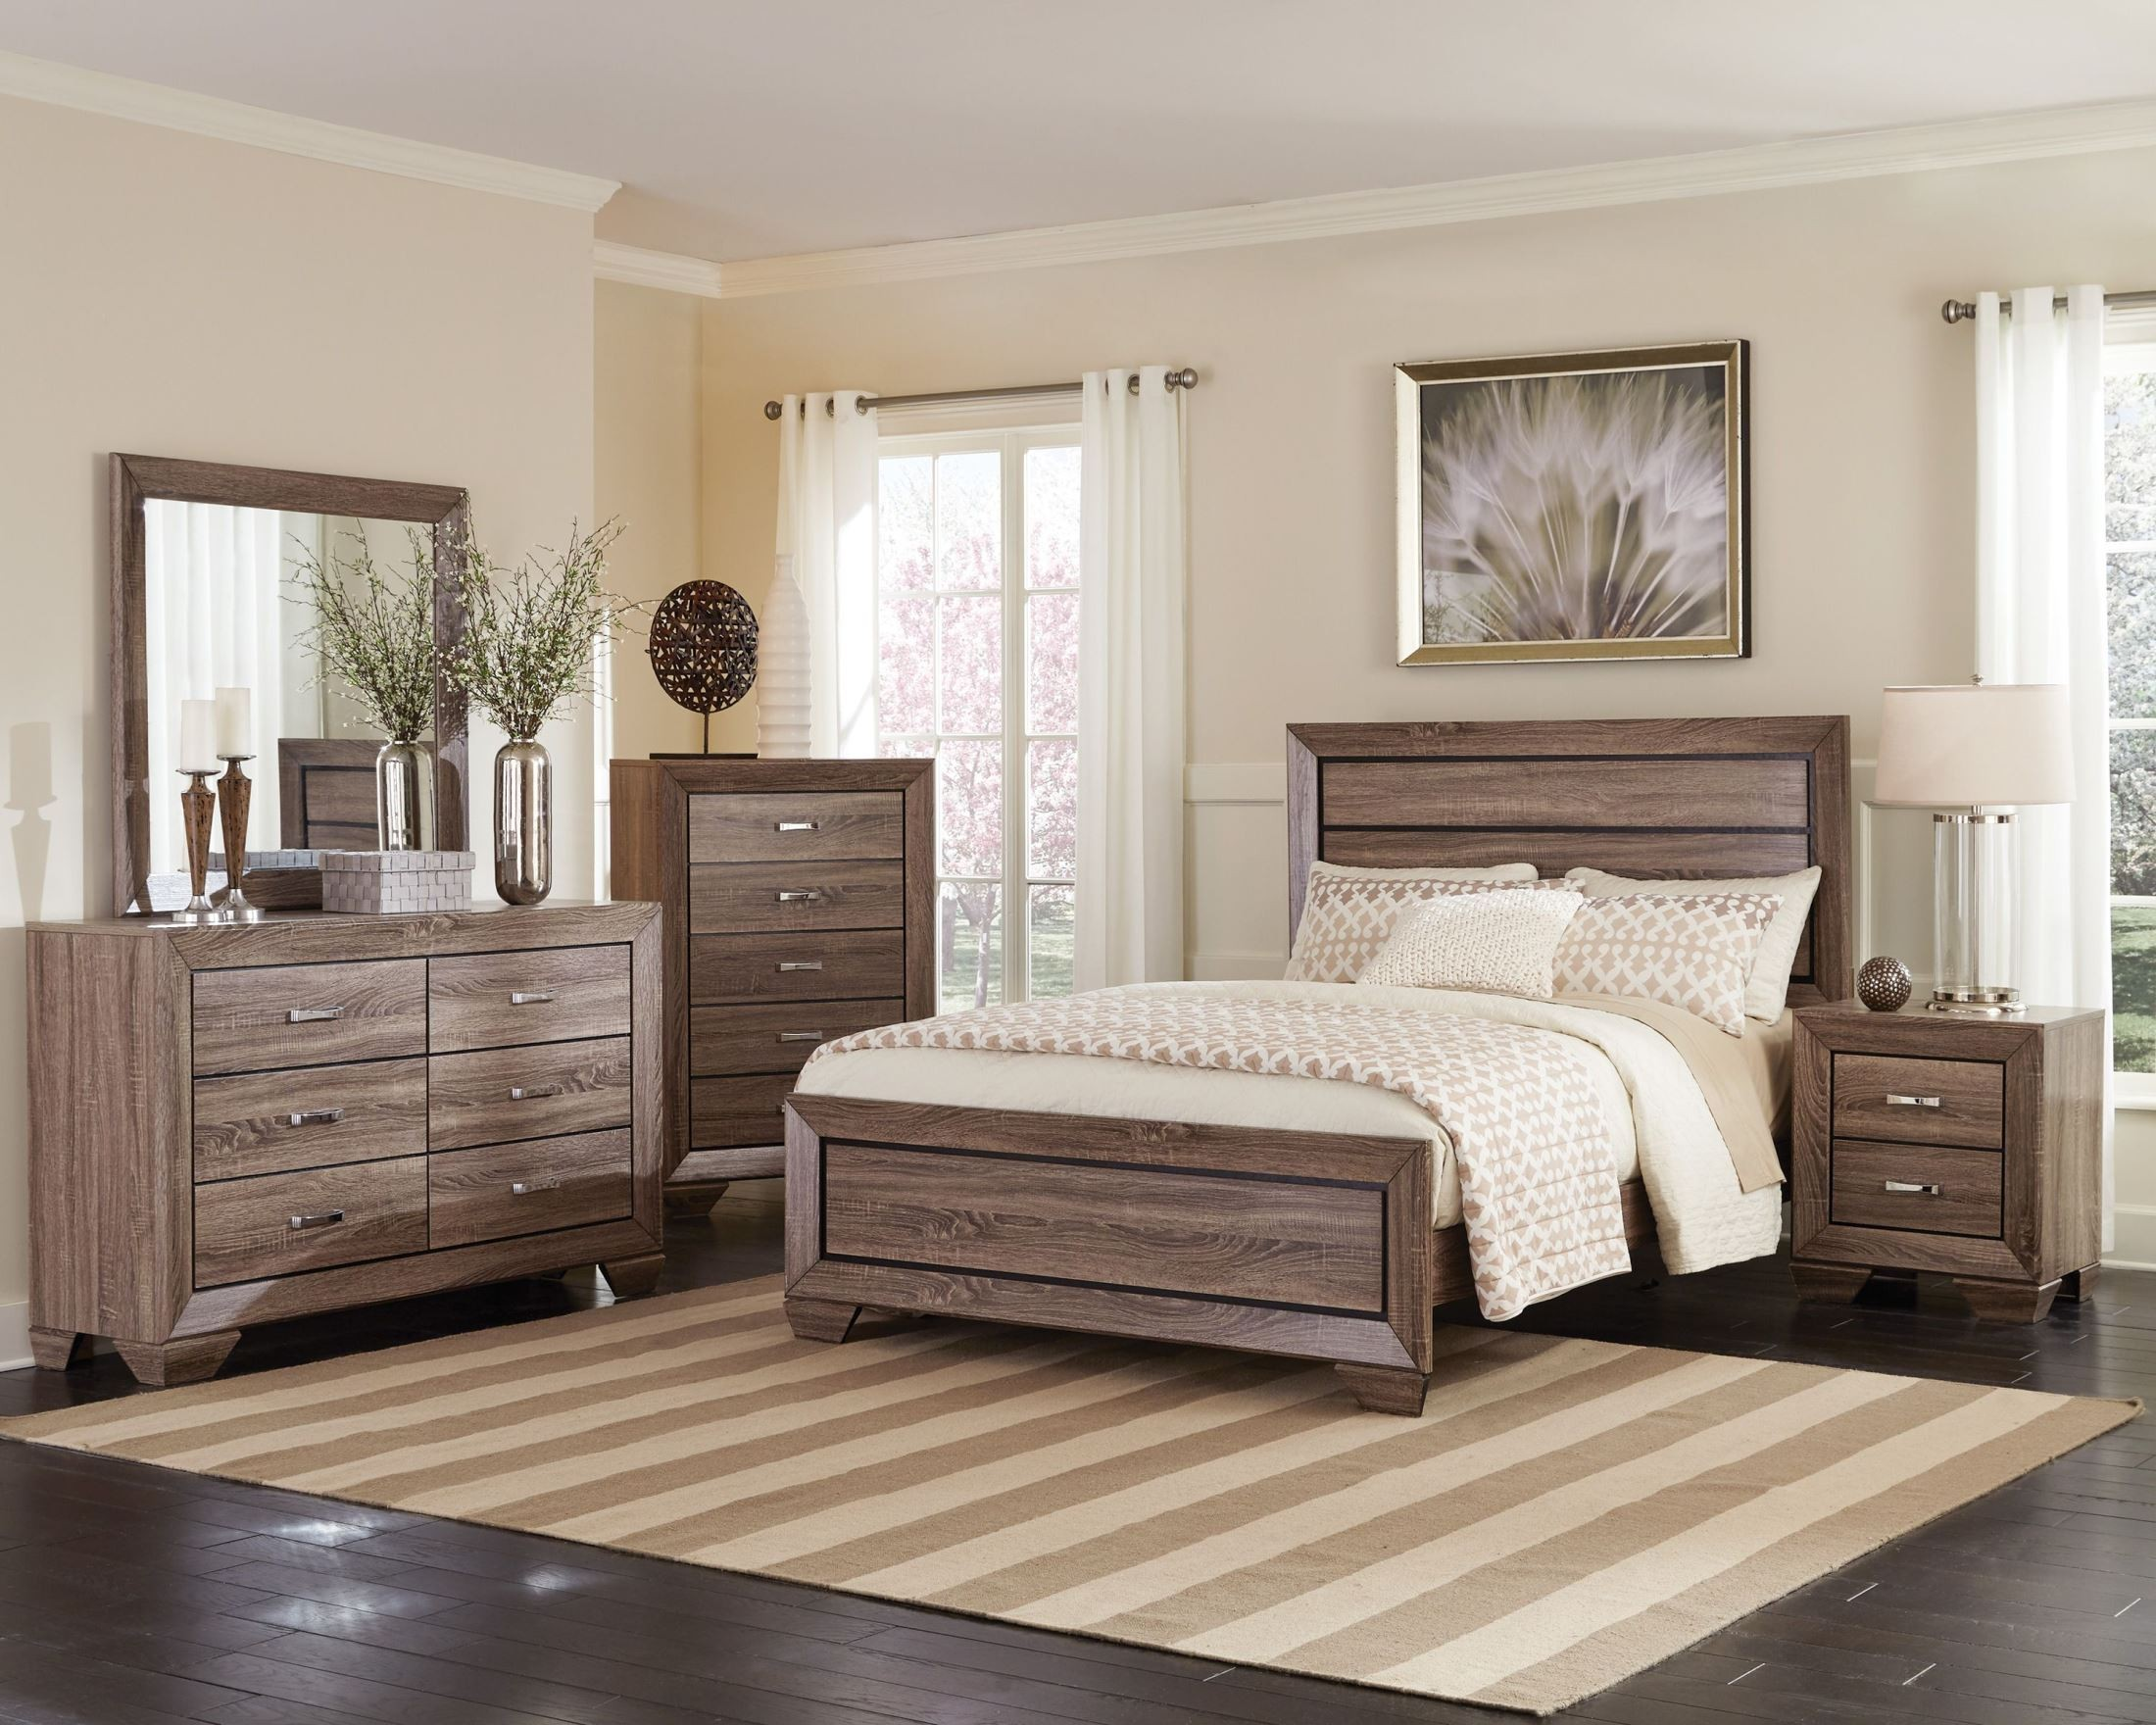 Kauffman Washed Taupe Panel Bedroom Set From Coaster (204191Q)